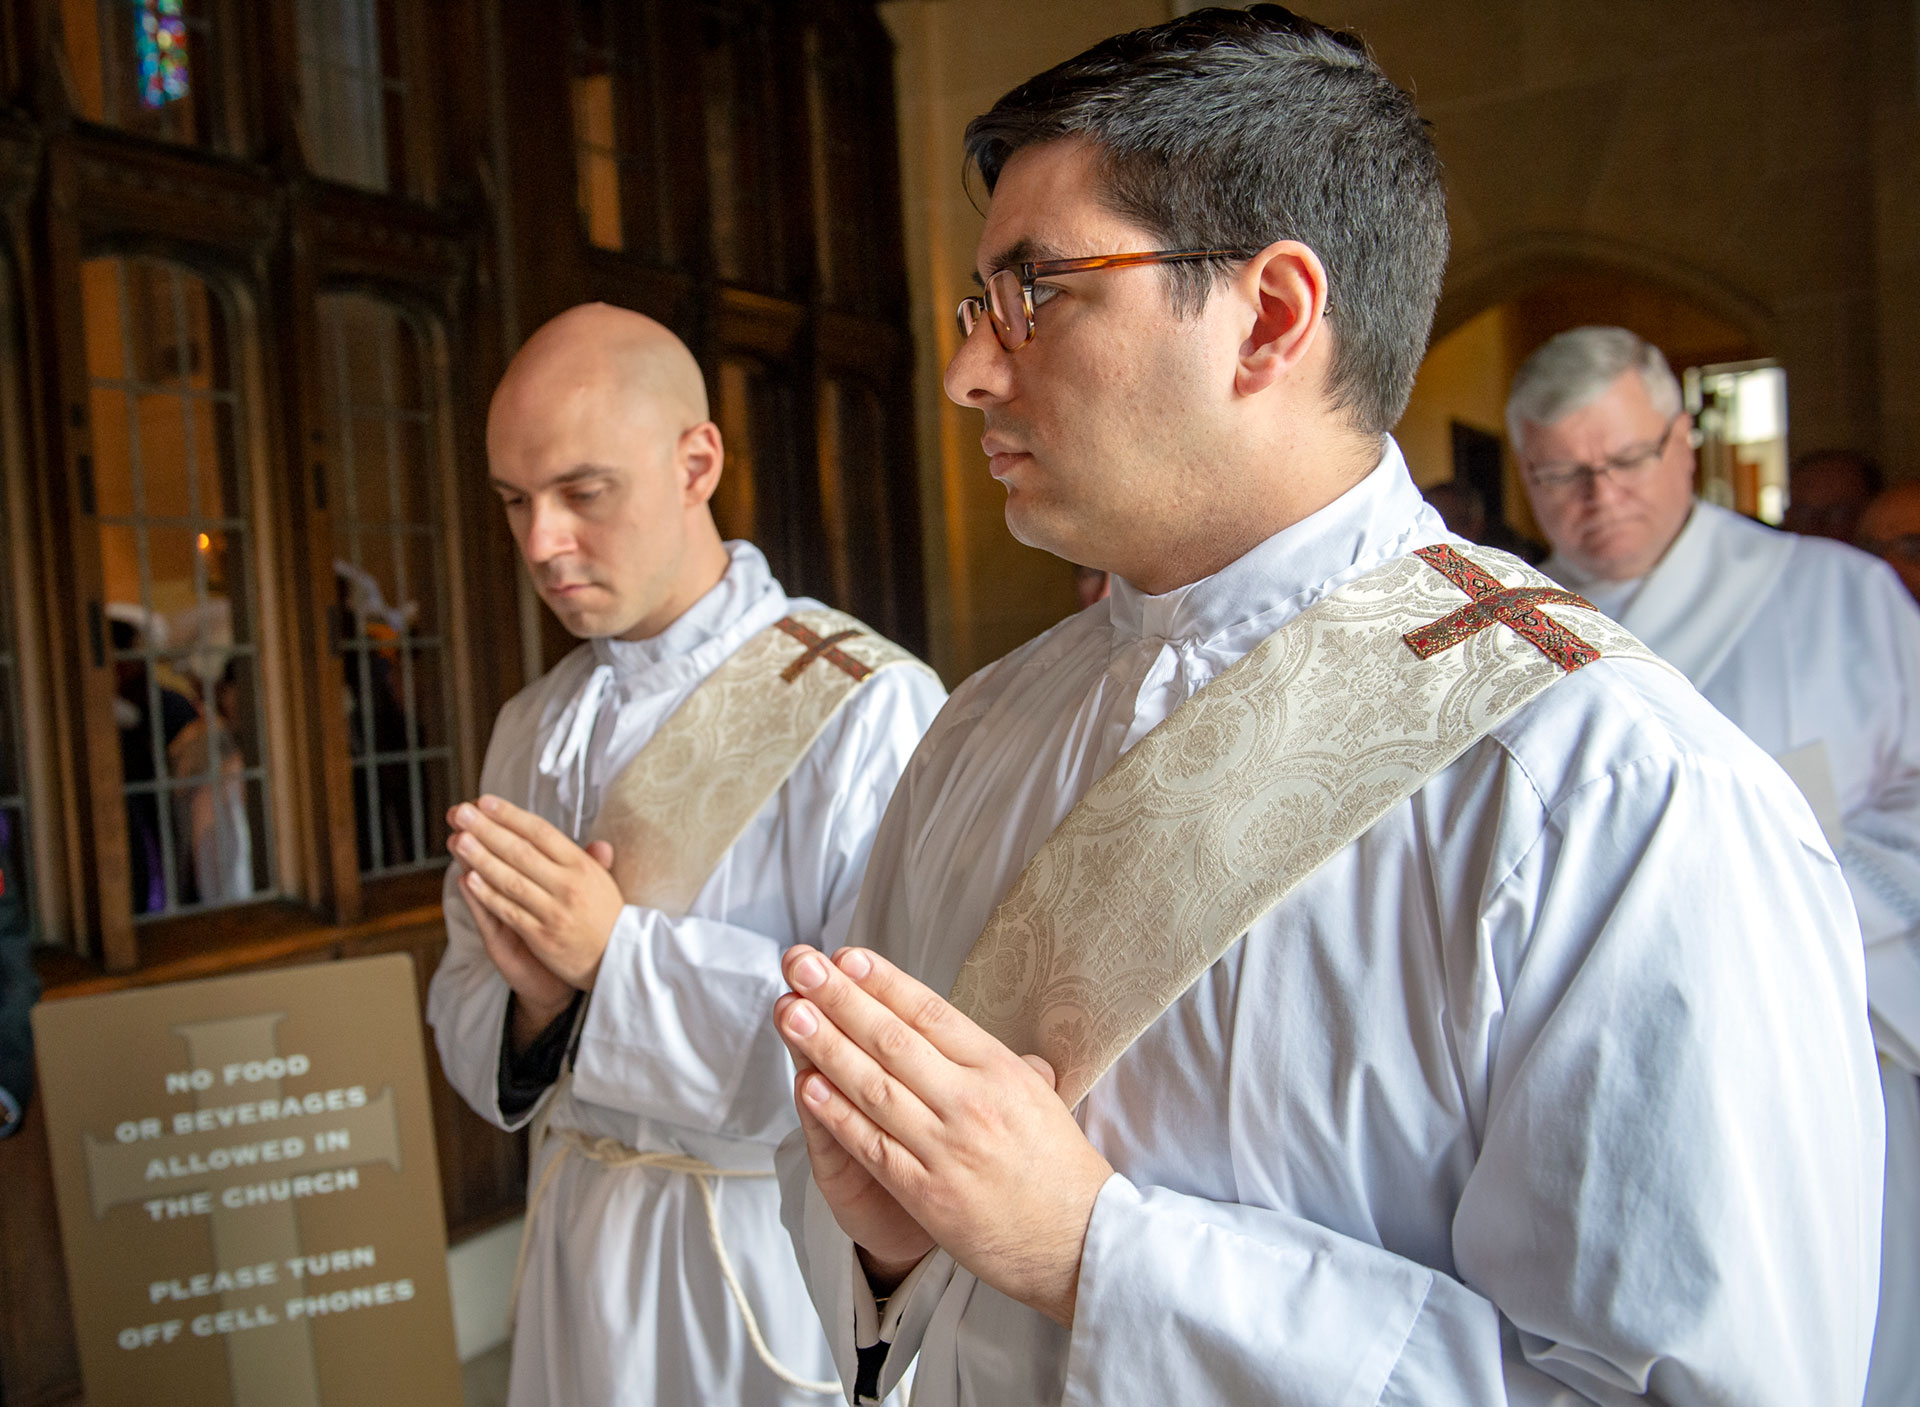 Then-Deacons Matthew J. Walter (left) and Daniel L. White process into Rochester's Sacred Heart Cathedral at the start of the priestly ordination Mass June 1. (Courier photo by Jeff Witherow)